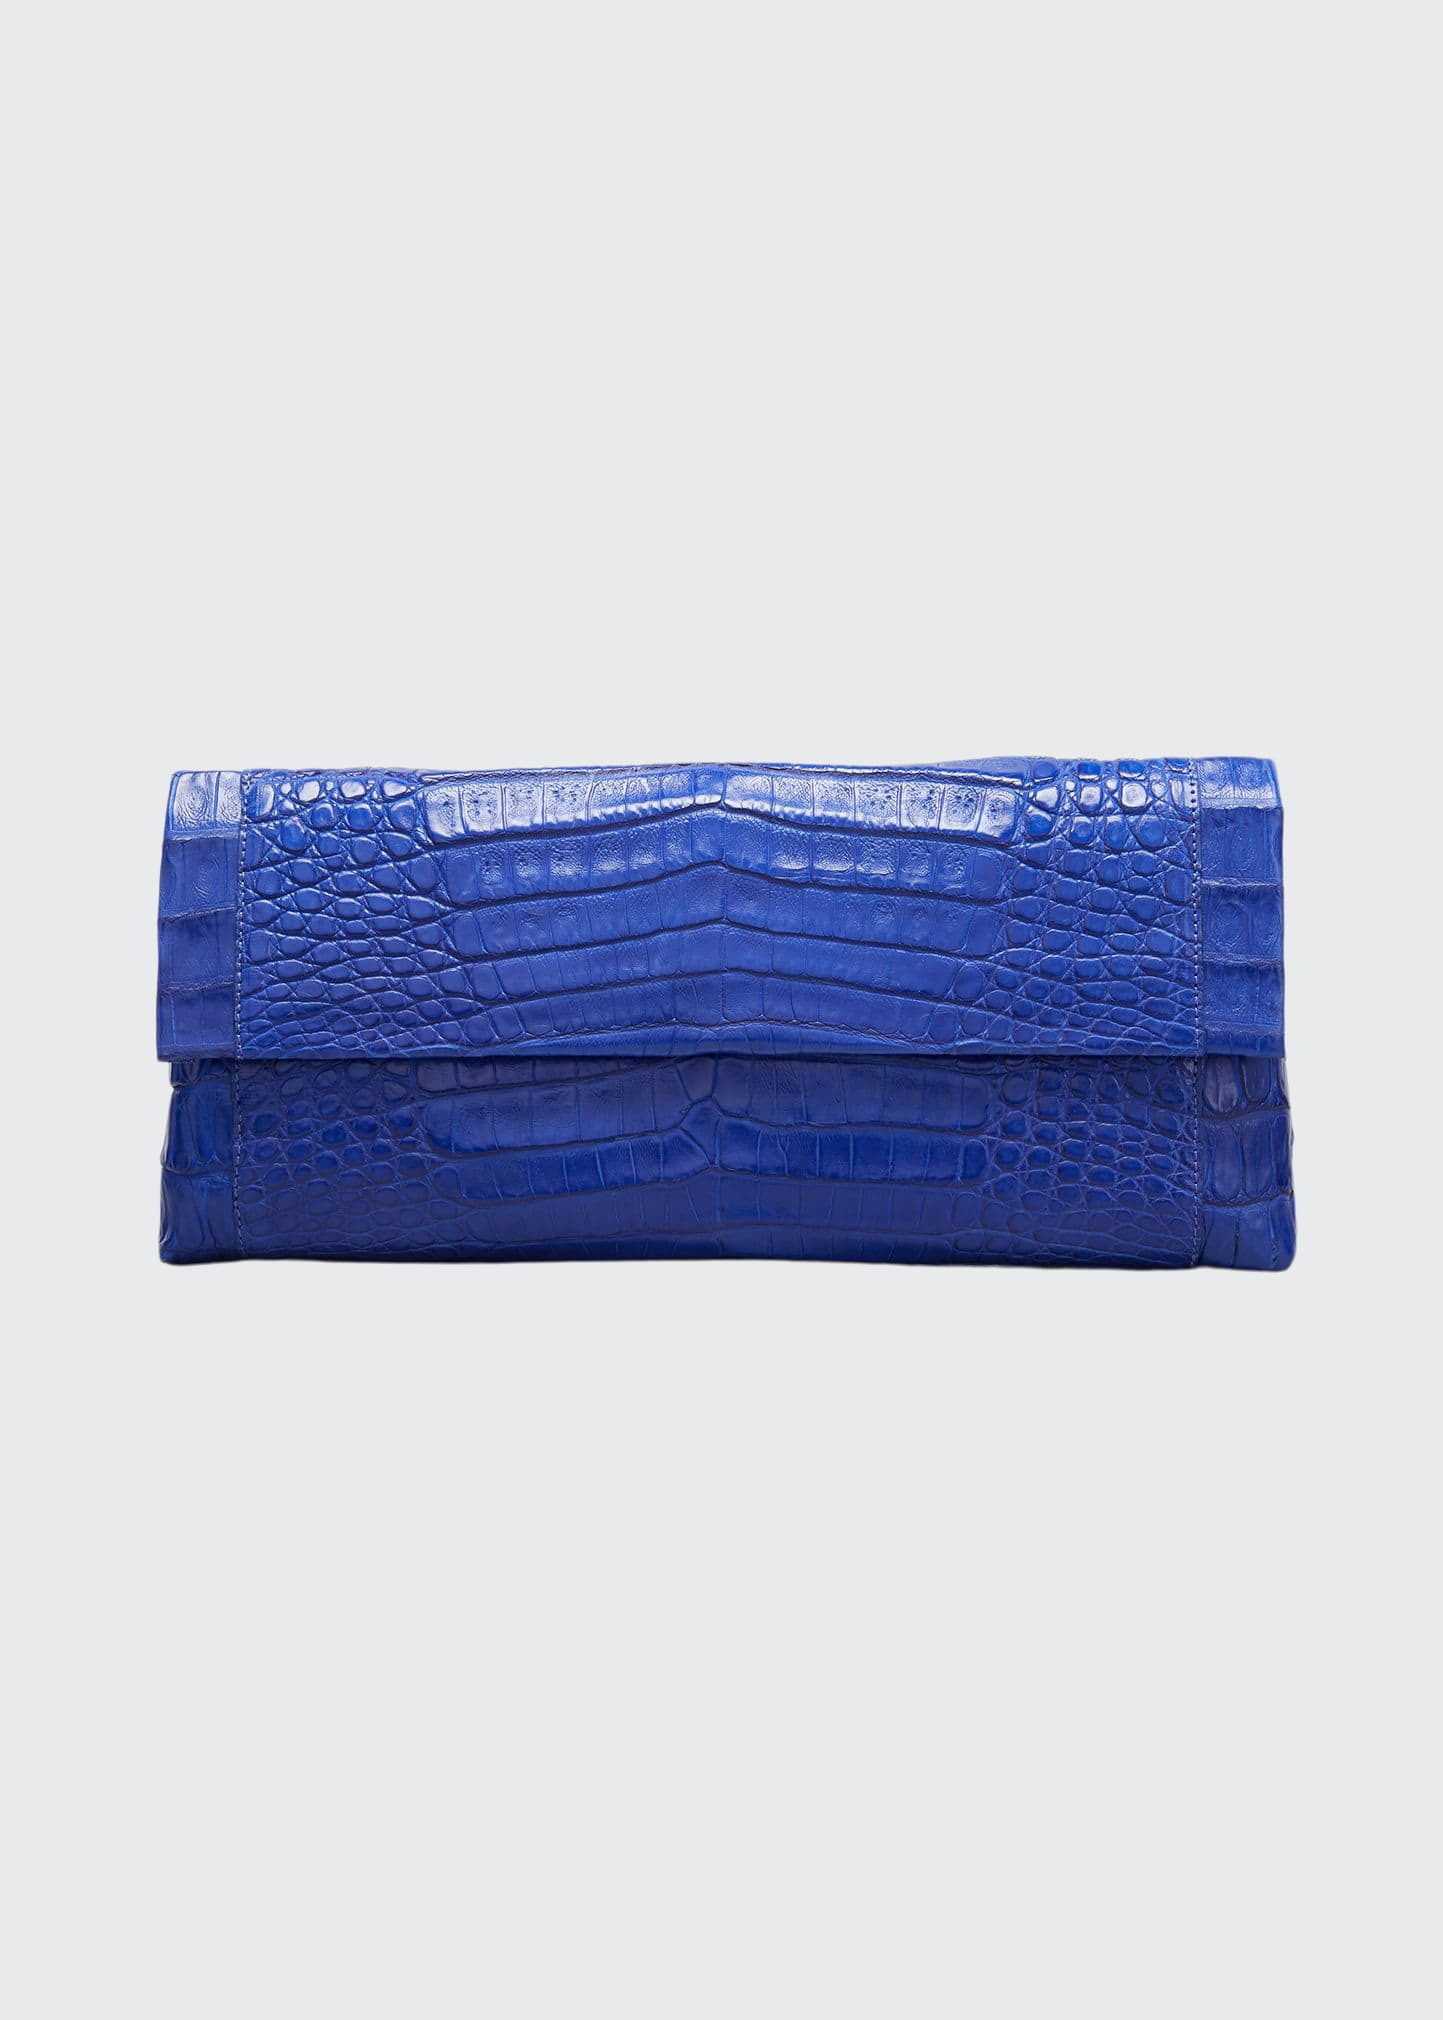 Nancy Gonzalez Clutches GOTHAM CROCODILE CLUTCH BAG